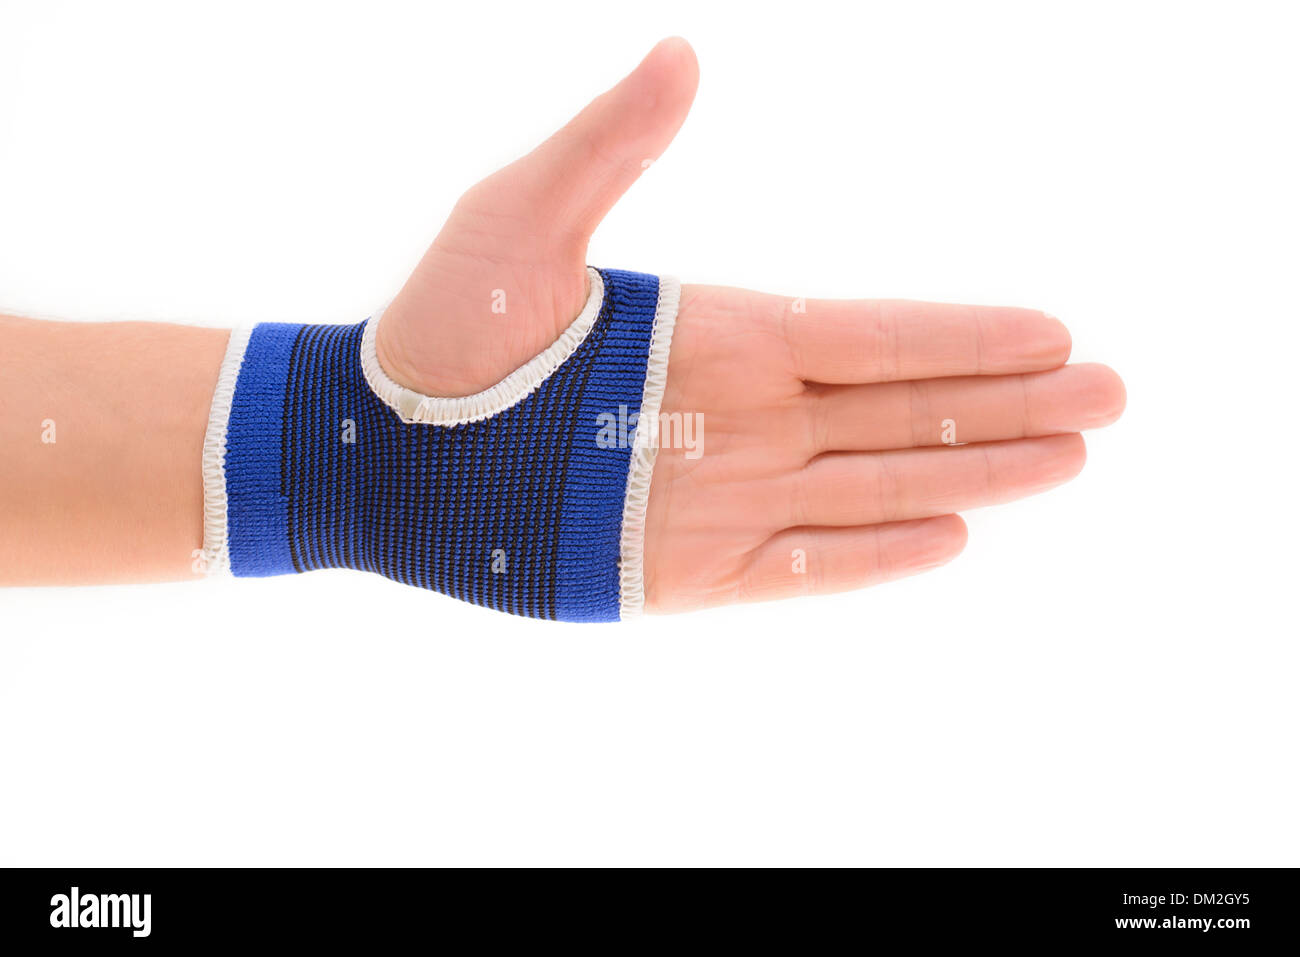 Wrist support isolated on white background - Stock Image